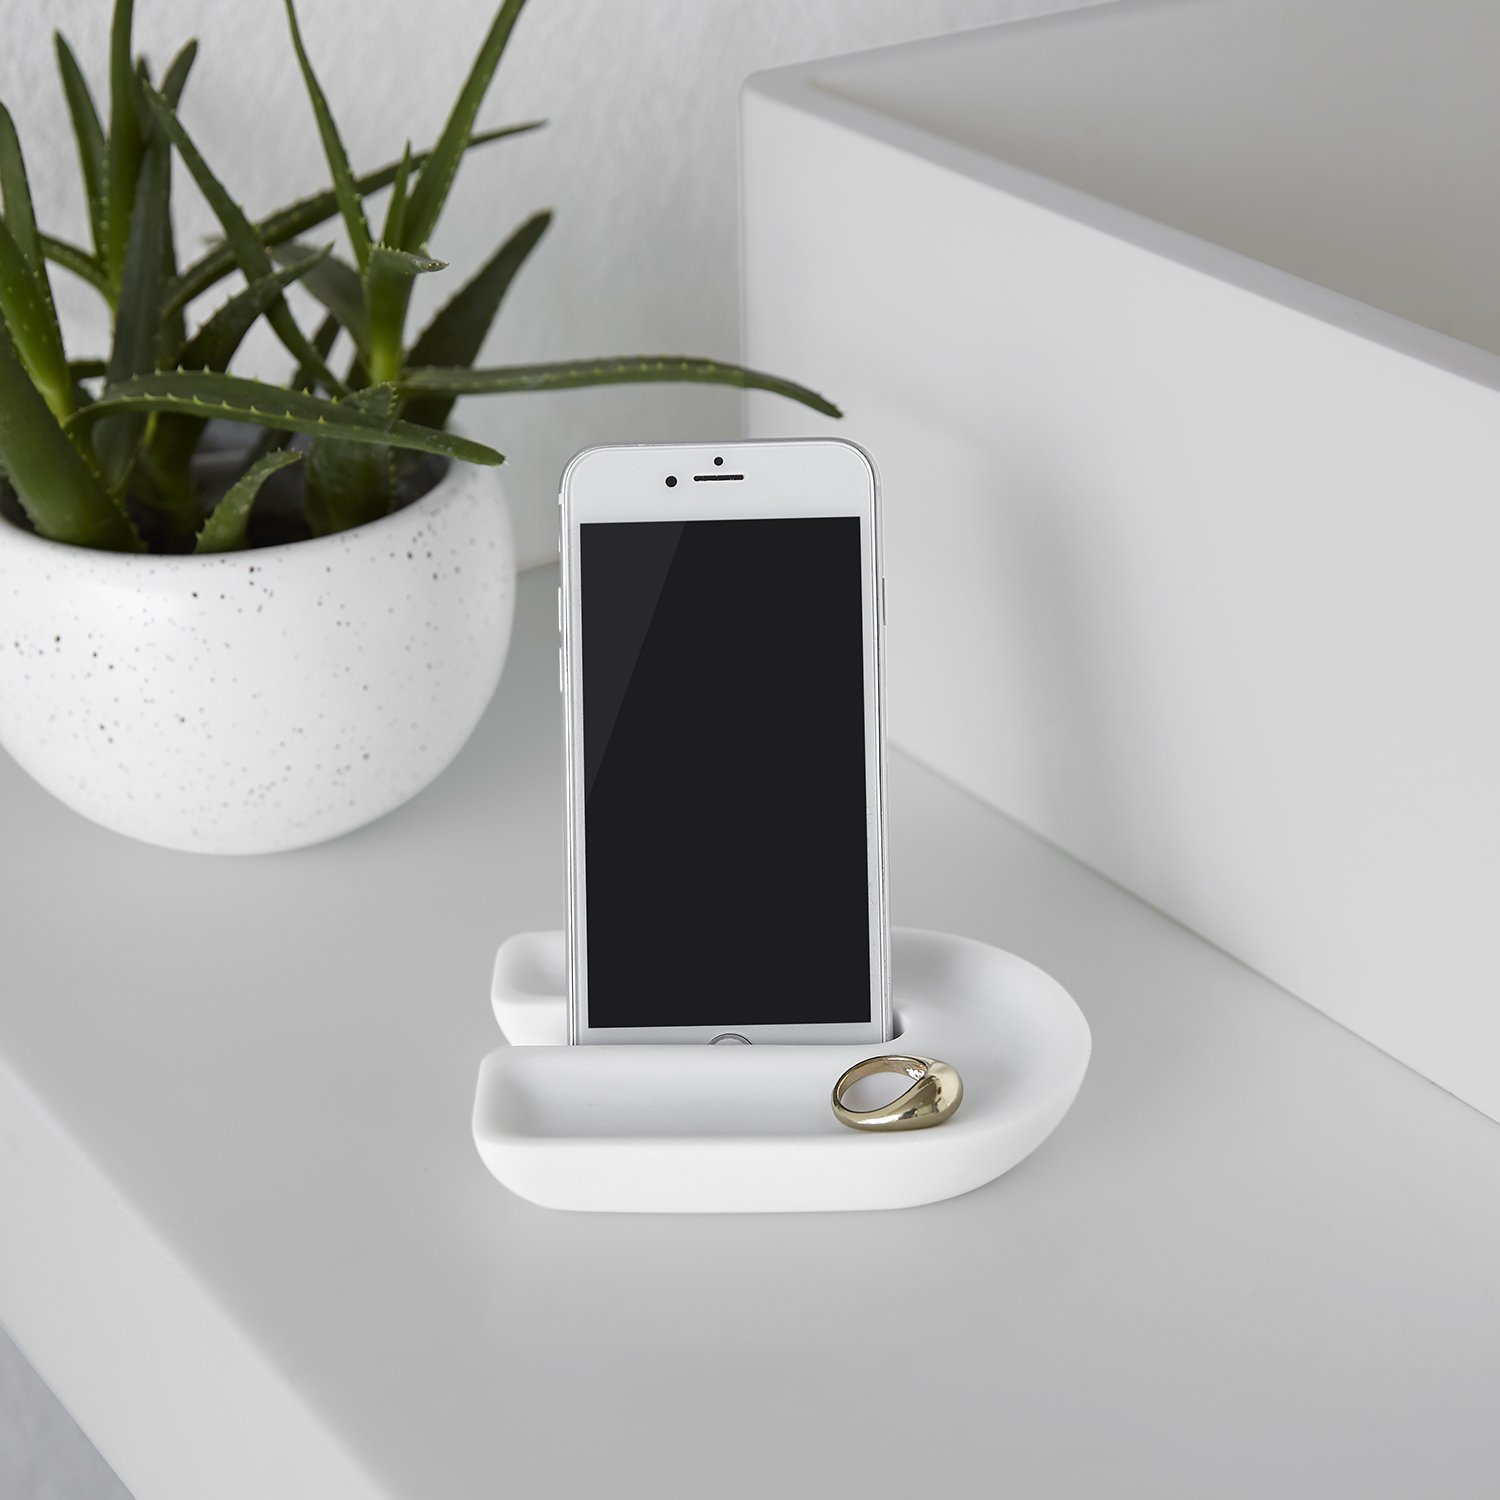 Buy Junip bathroom countertop phone holder by Umbrit